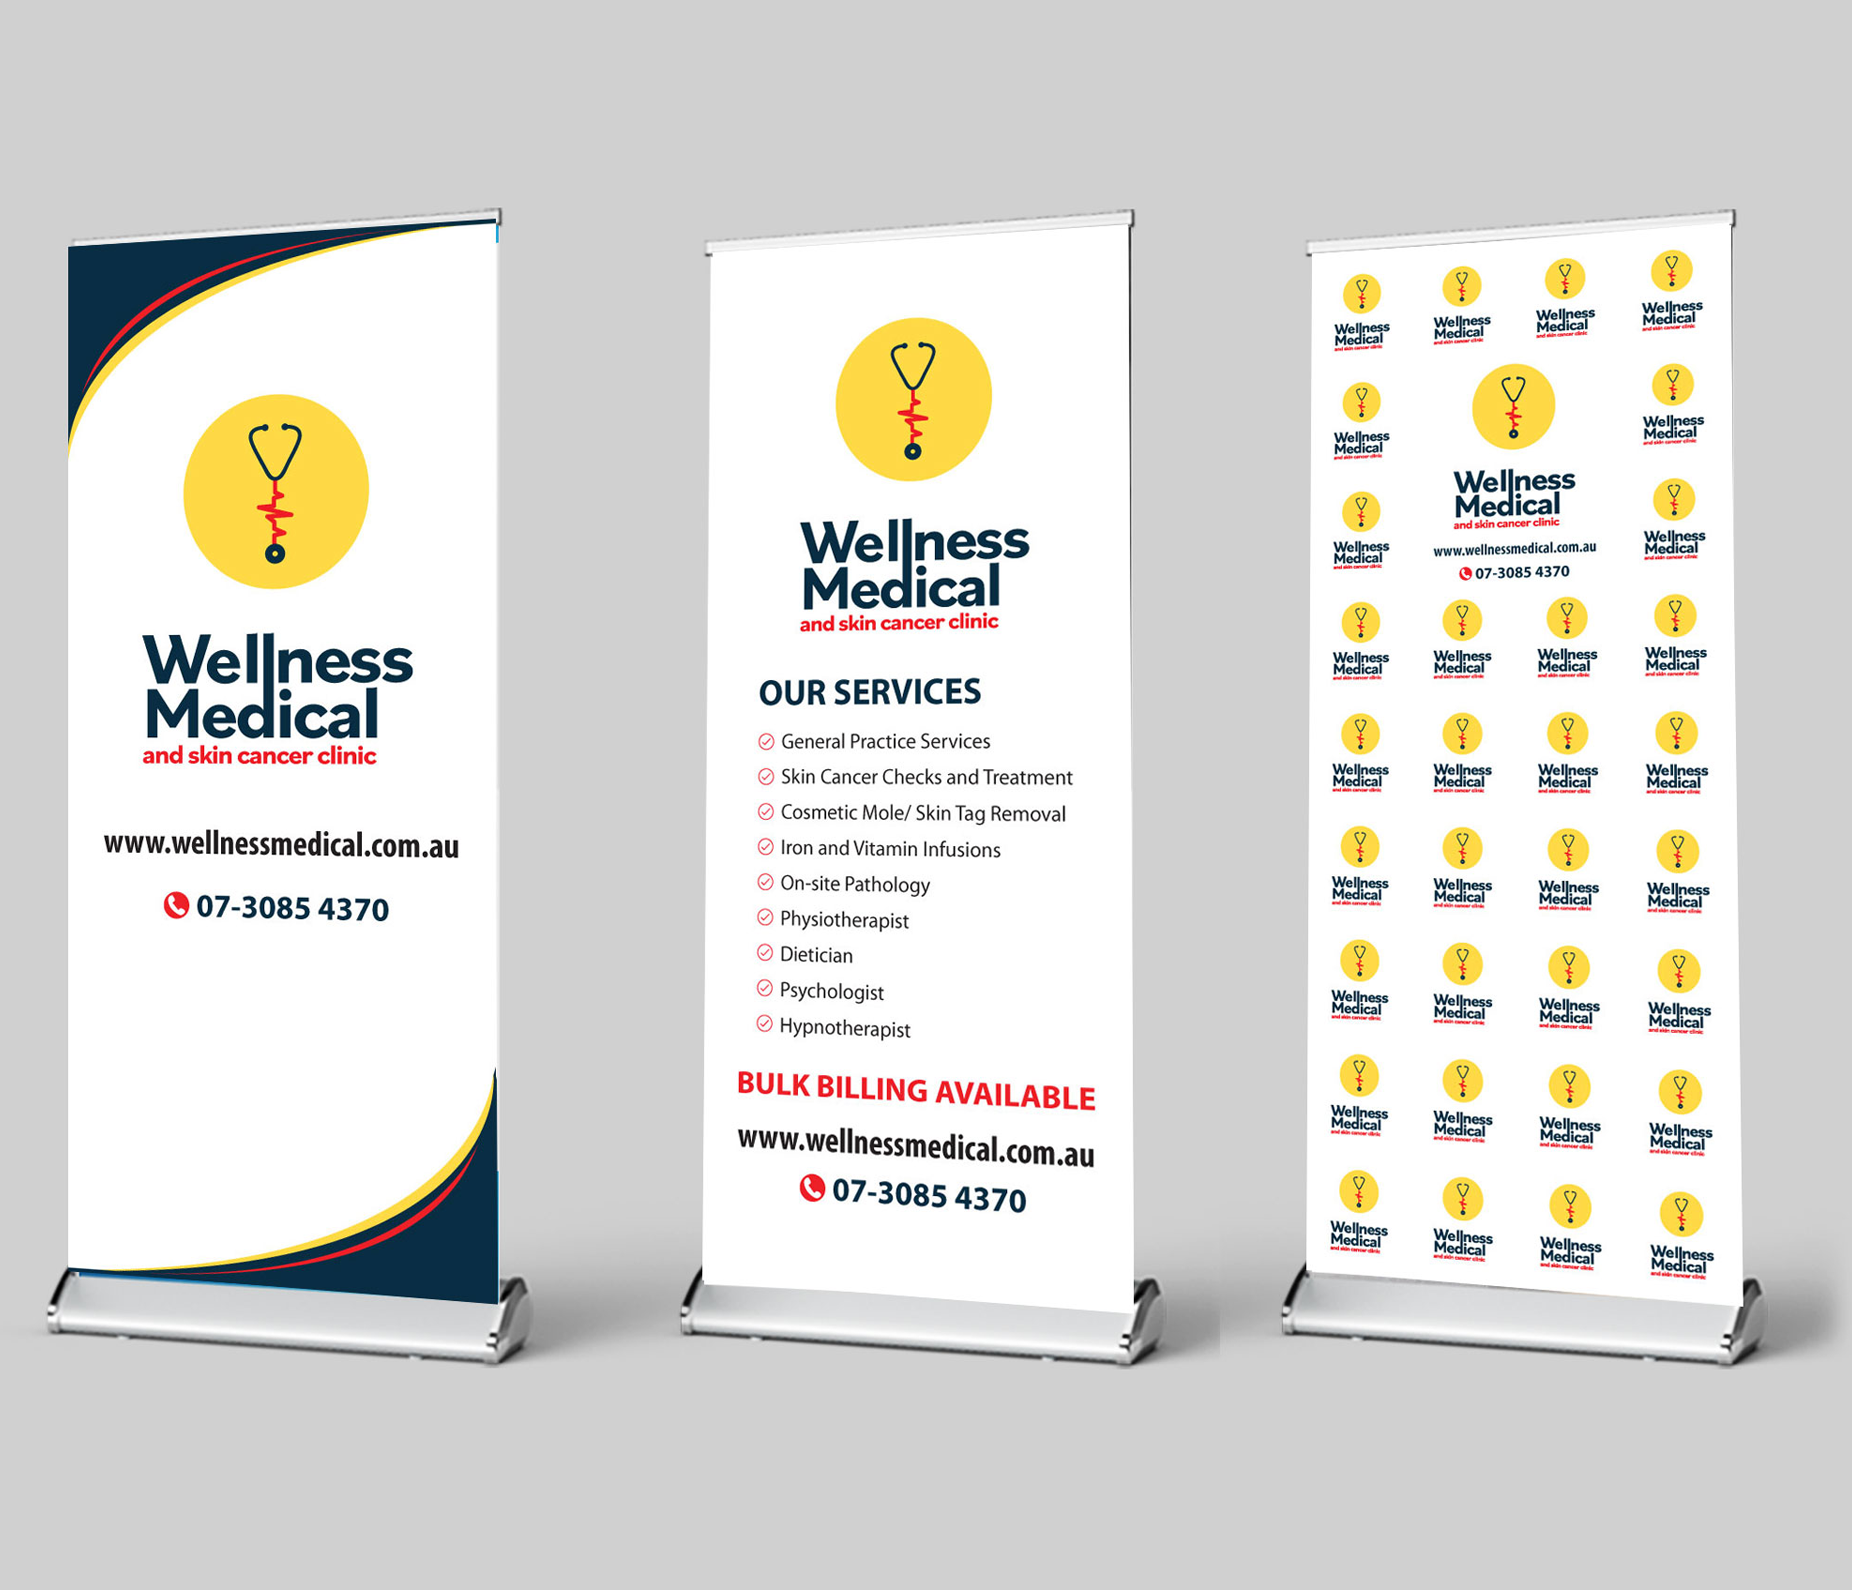 <p>WELLNESS MEDICAL & SKIN CANCER CLINIC : BRAND VISIBILITY</p>